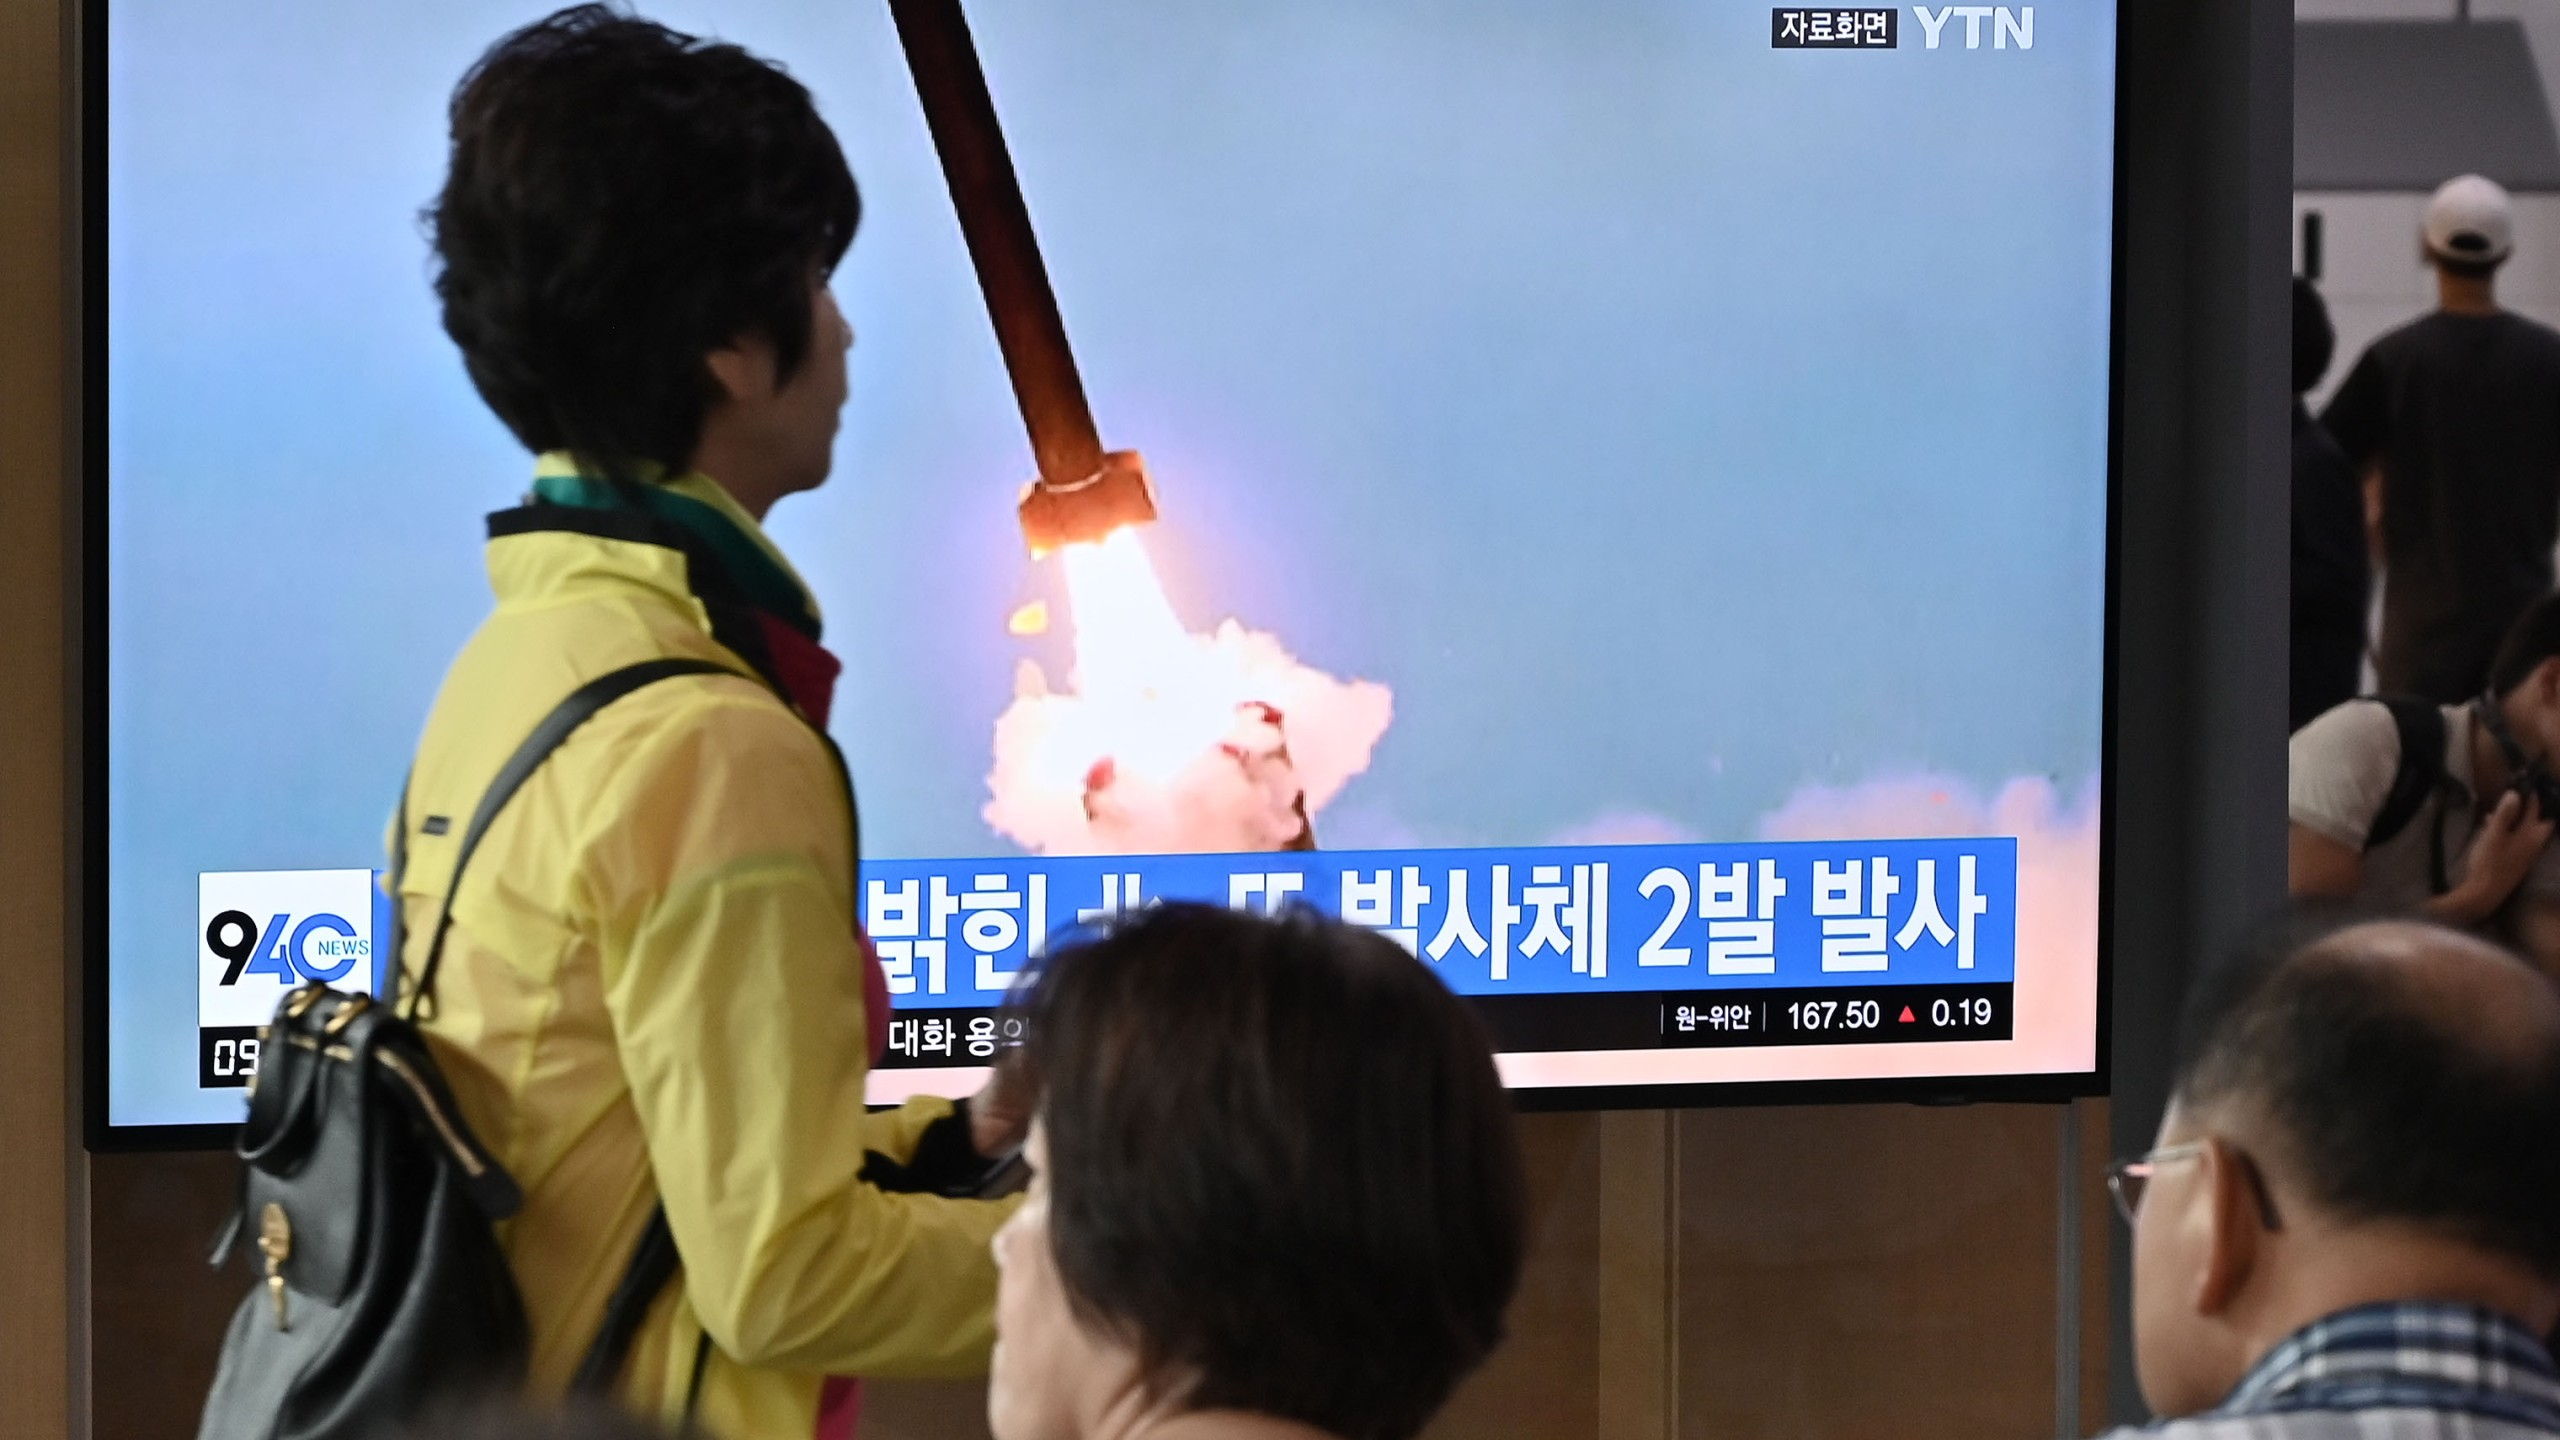 People watch a television news screen showing file footage of a North Korean missile launch, at a railway station in Seoul on September 10, 2019. (Credit: JUNG YEON-JE/AFP/Getty Images)